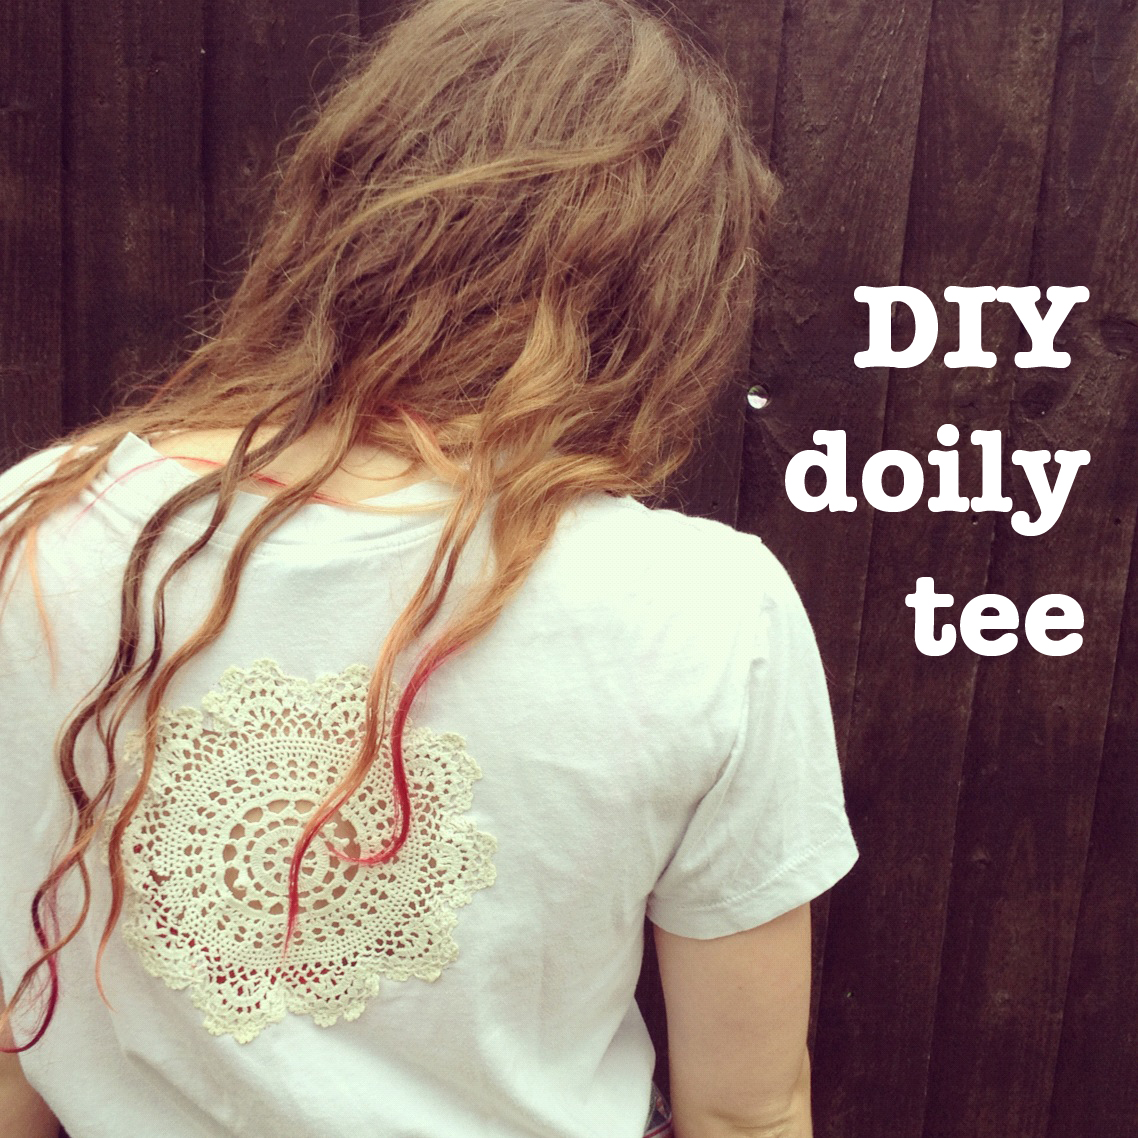 DIY doily t-shirt